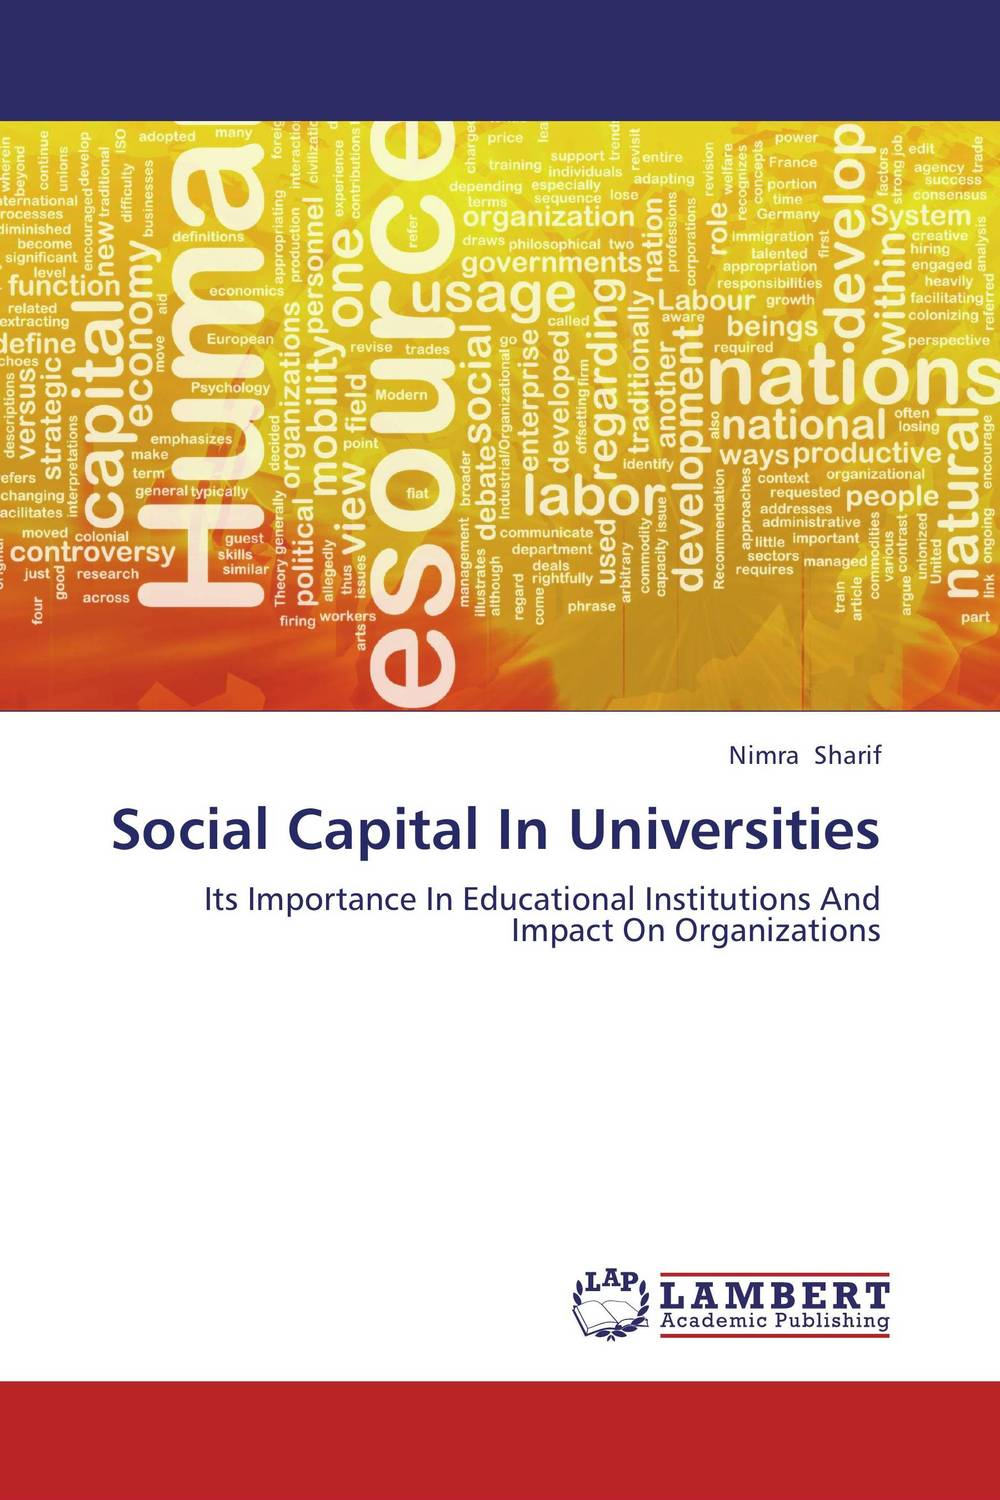 Social Capital In Universities i manev social capital and strategy effectiveness an empirical study of entrepreneurial ventures in a transition economy